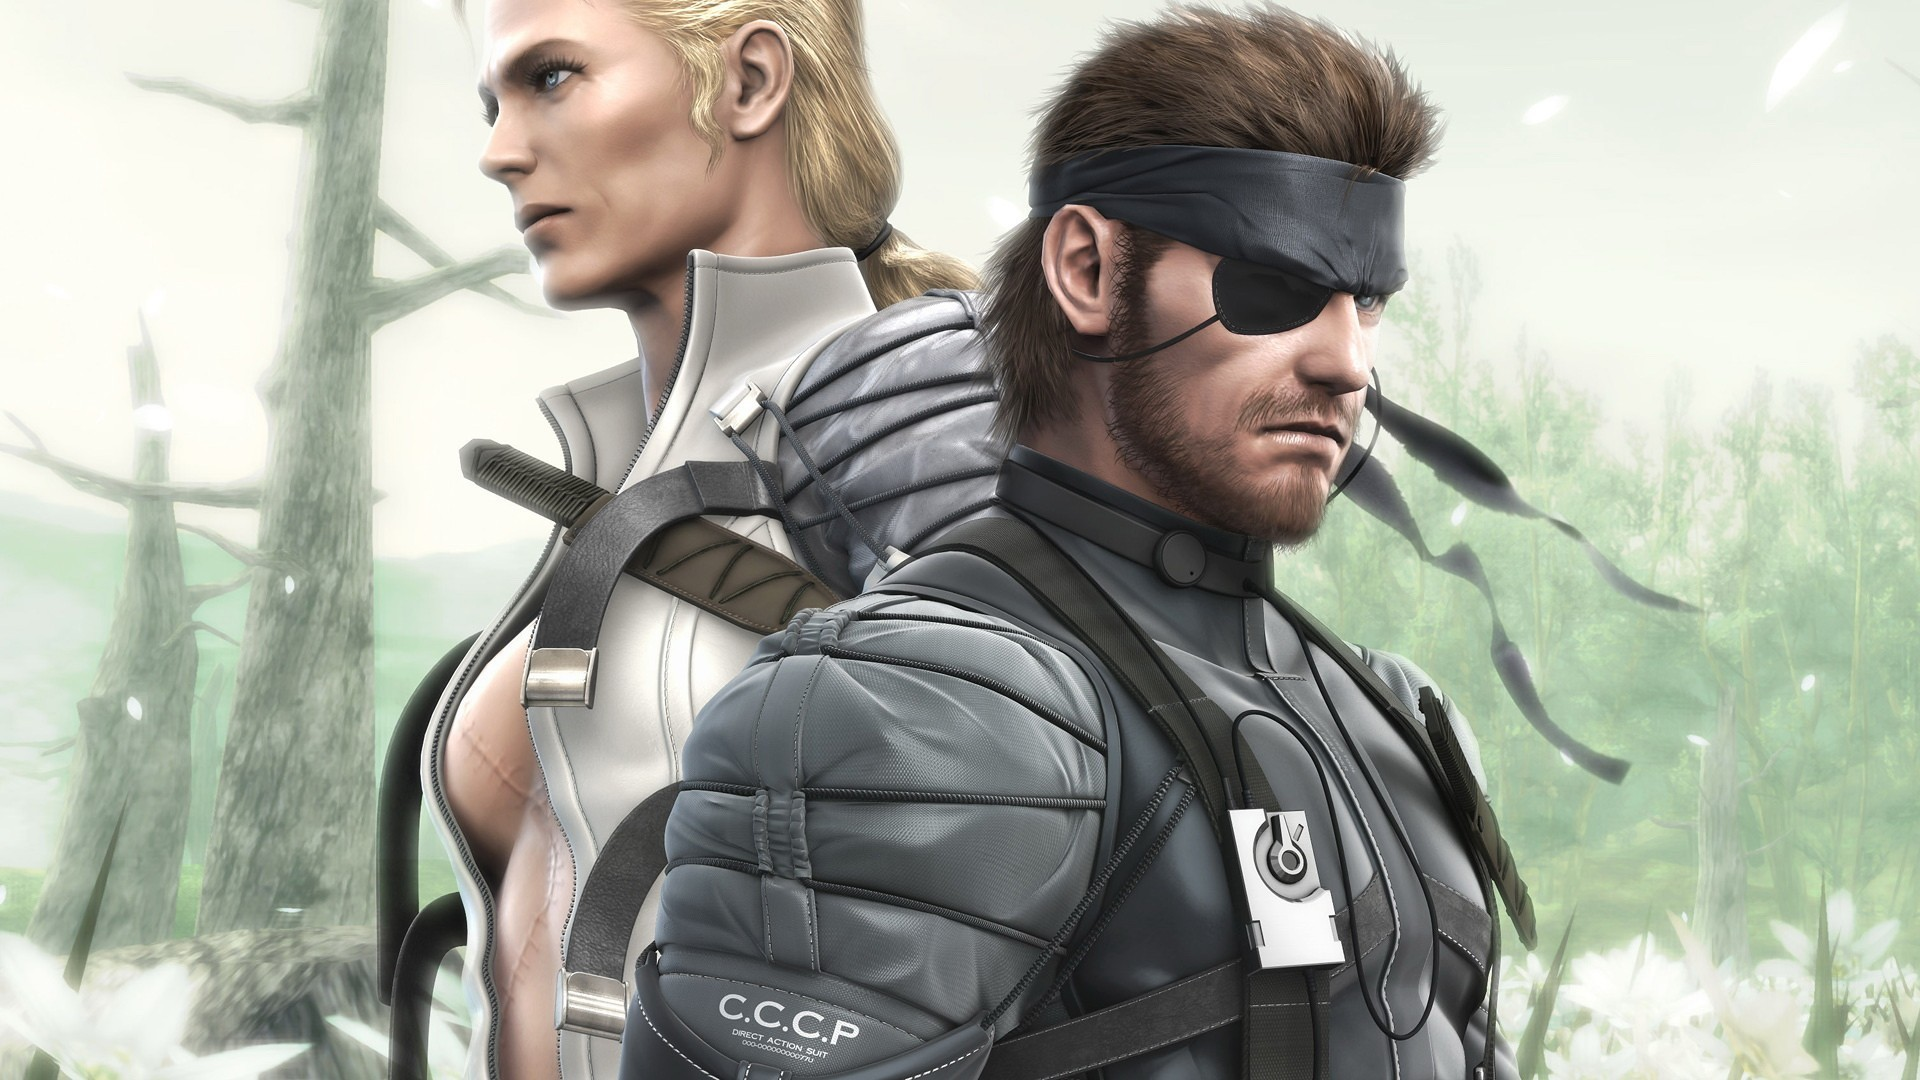 26 Metal Gear Solid 3: Snake Eater HD Wallpapers | Backgrounds | Adorable  Wallpapers | Pinterest | Hd wallpaper, Snake and Metal gear solid